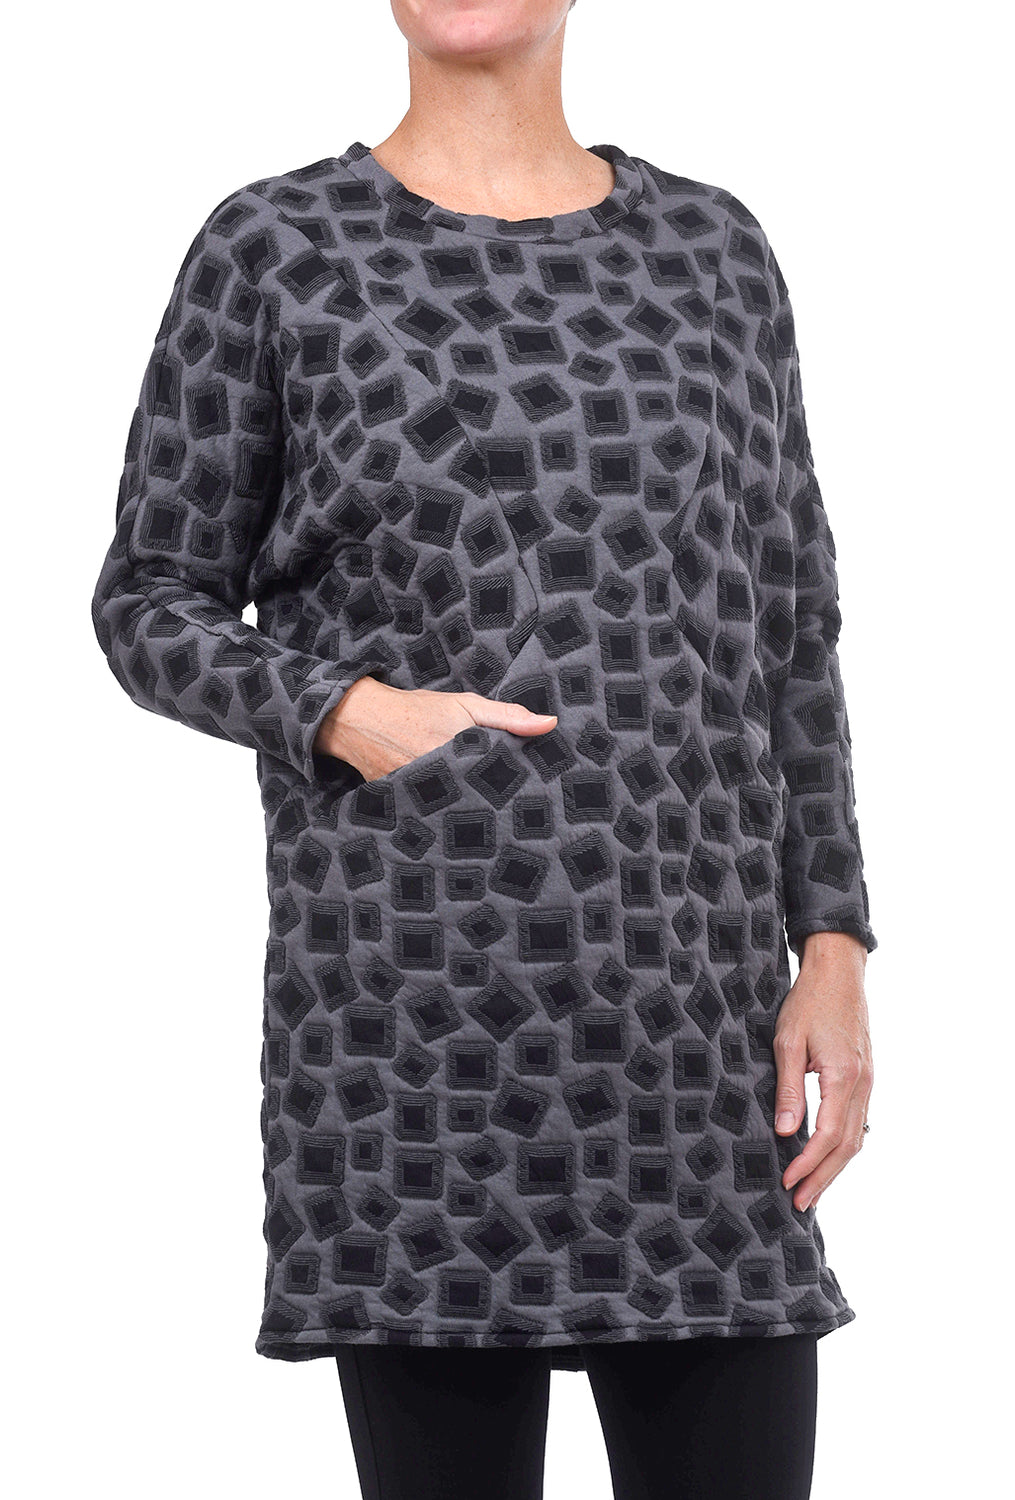 Niche Square Knit High Watt Tunic, Gray Multi